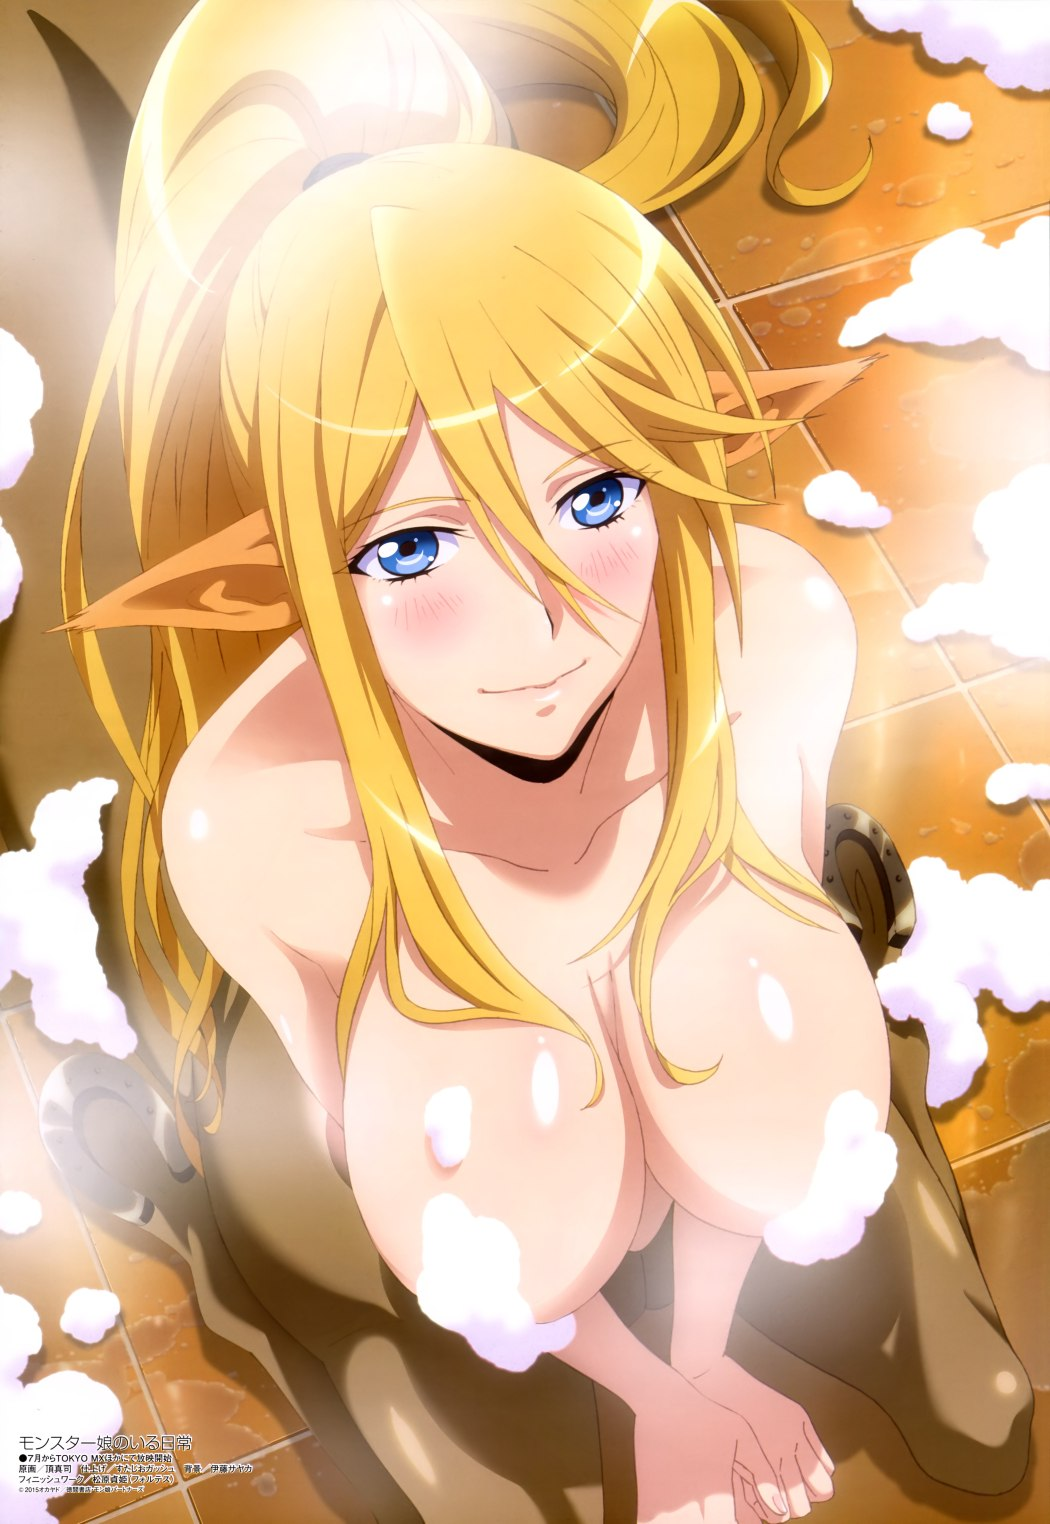 Cerea Prepares for Monster Musume's Debut